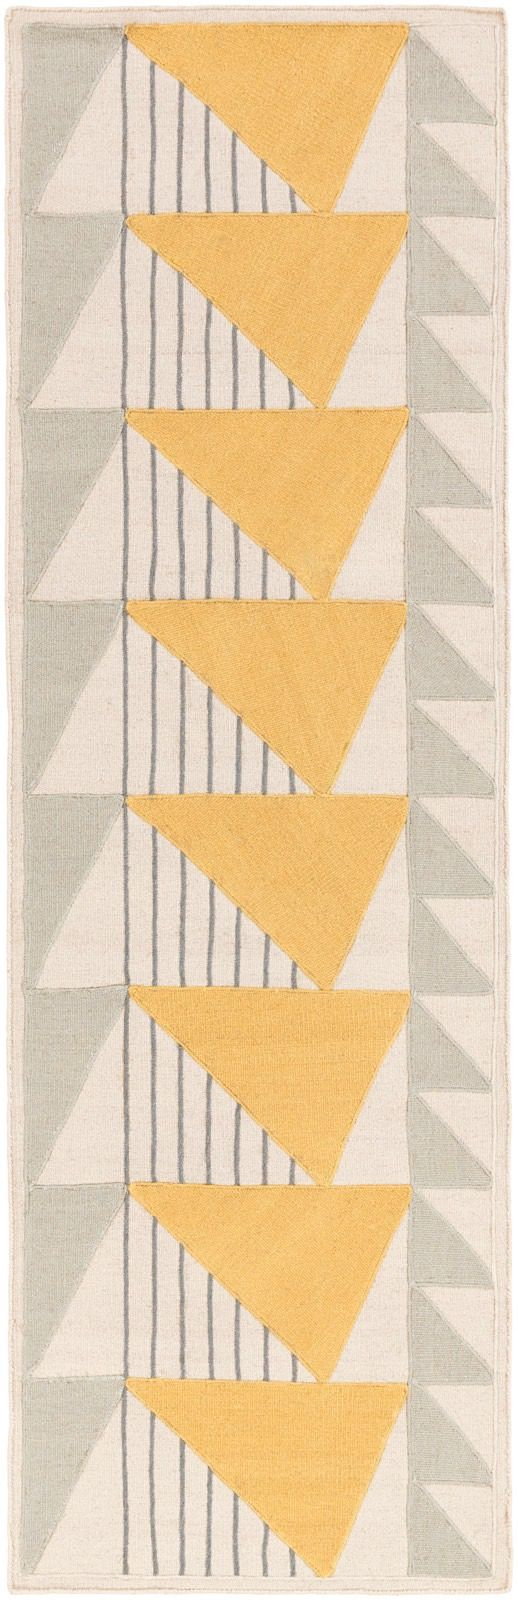 surya renata contemporary area rug collection